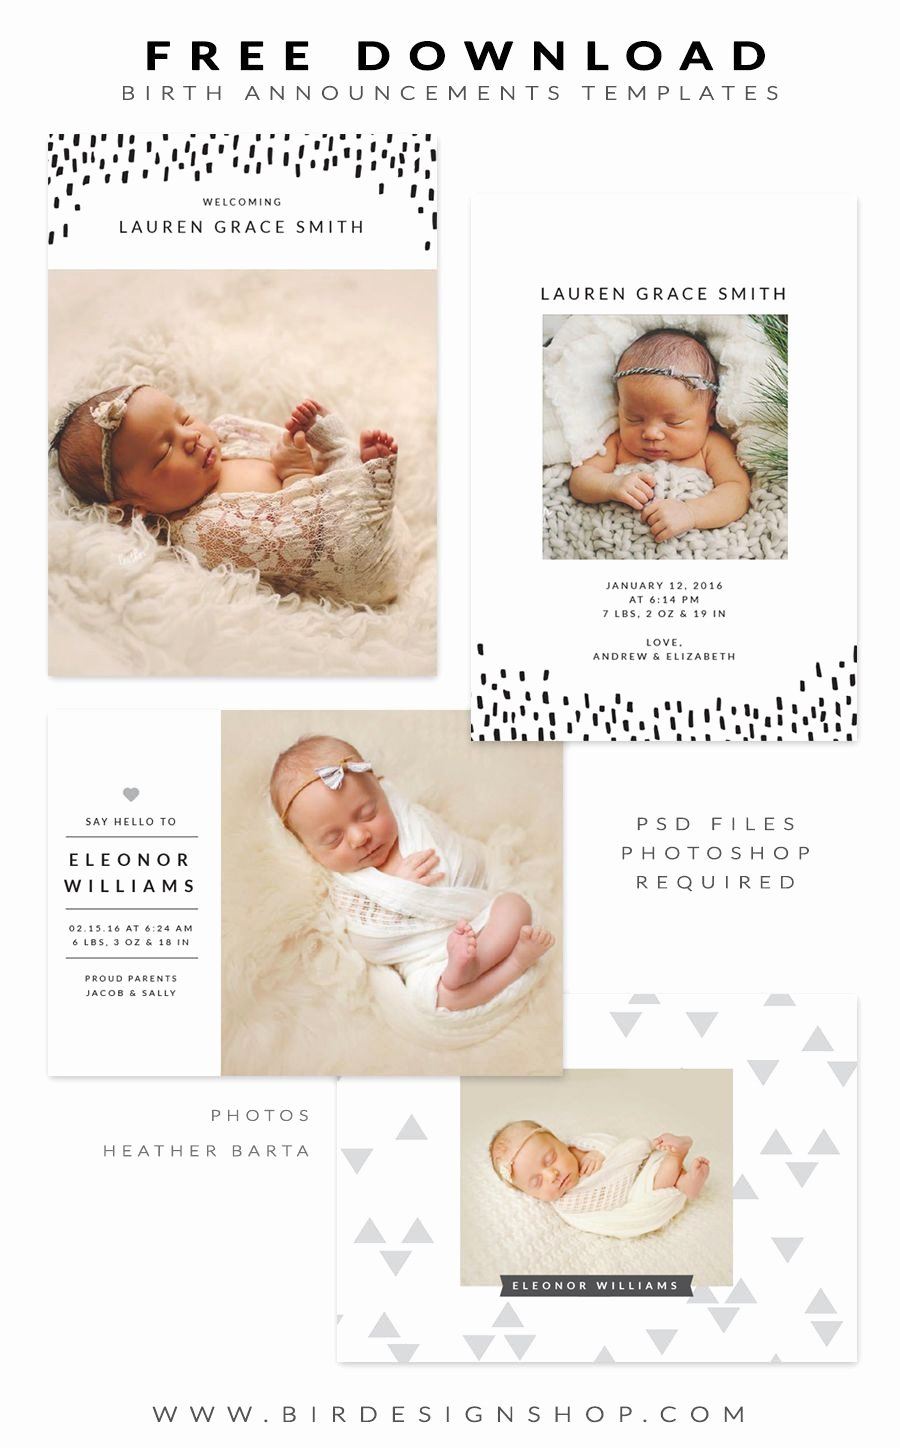 Baby Announcement Template Free Lovely Free Birth Announcements Templates January Freebie